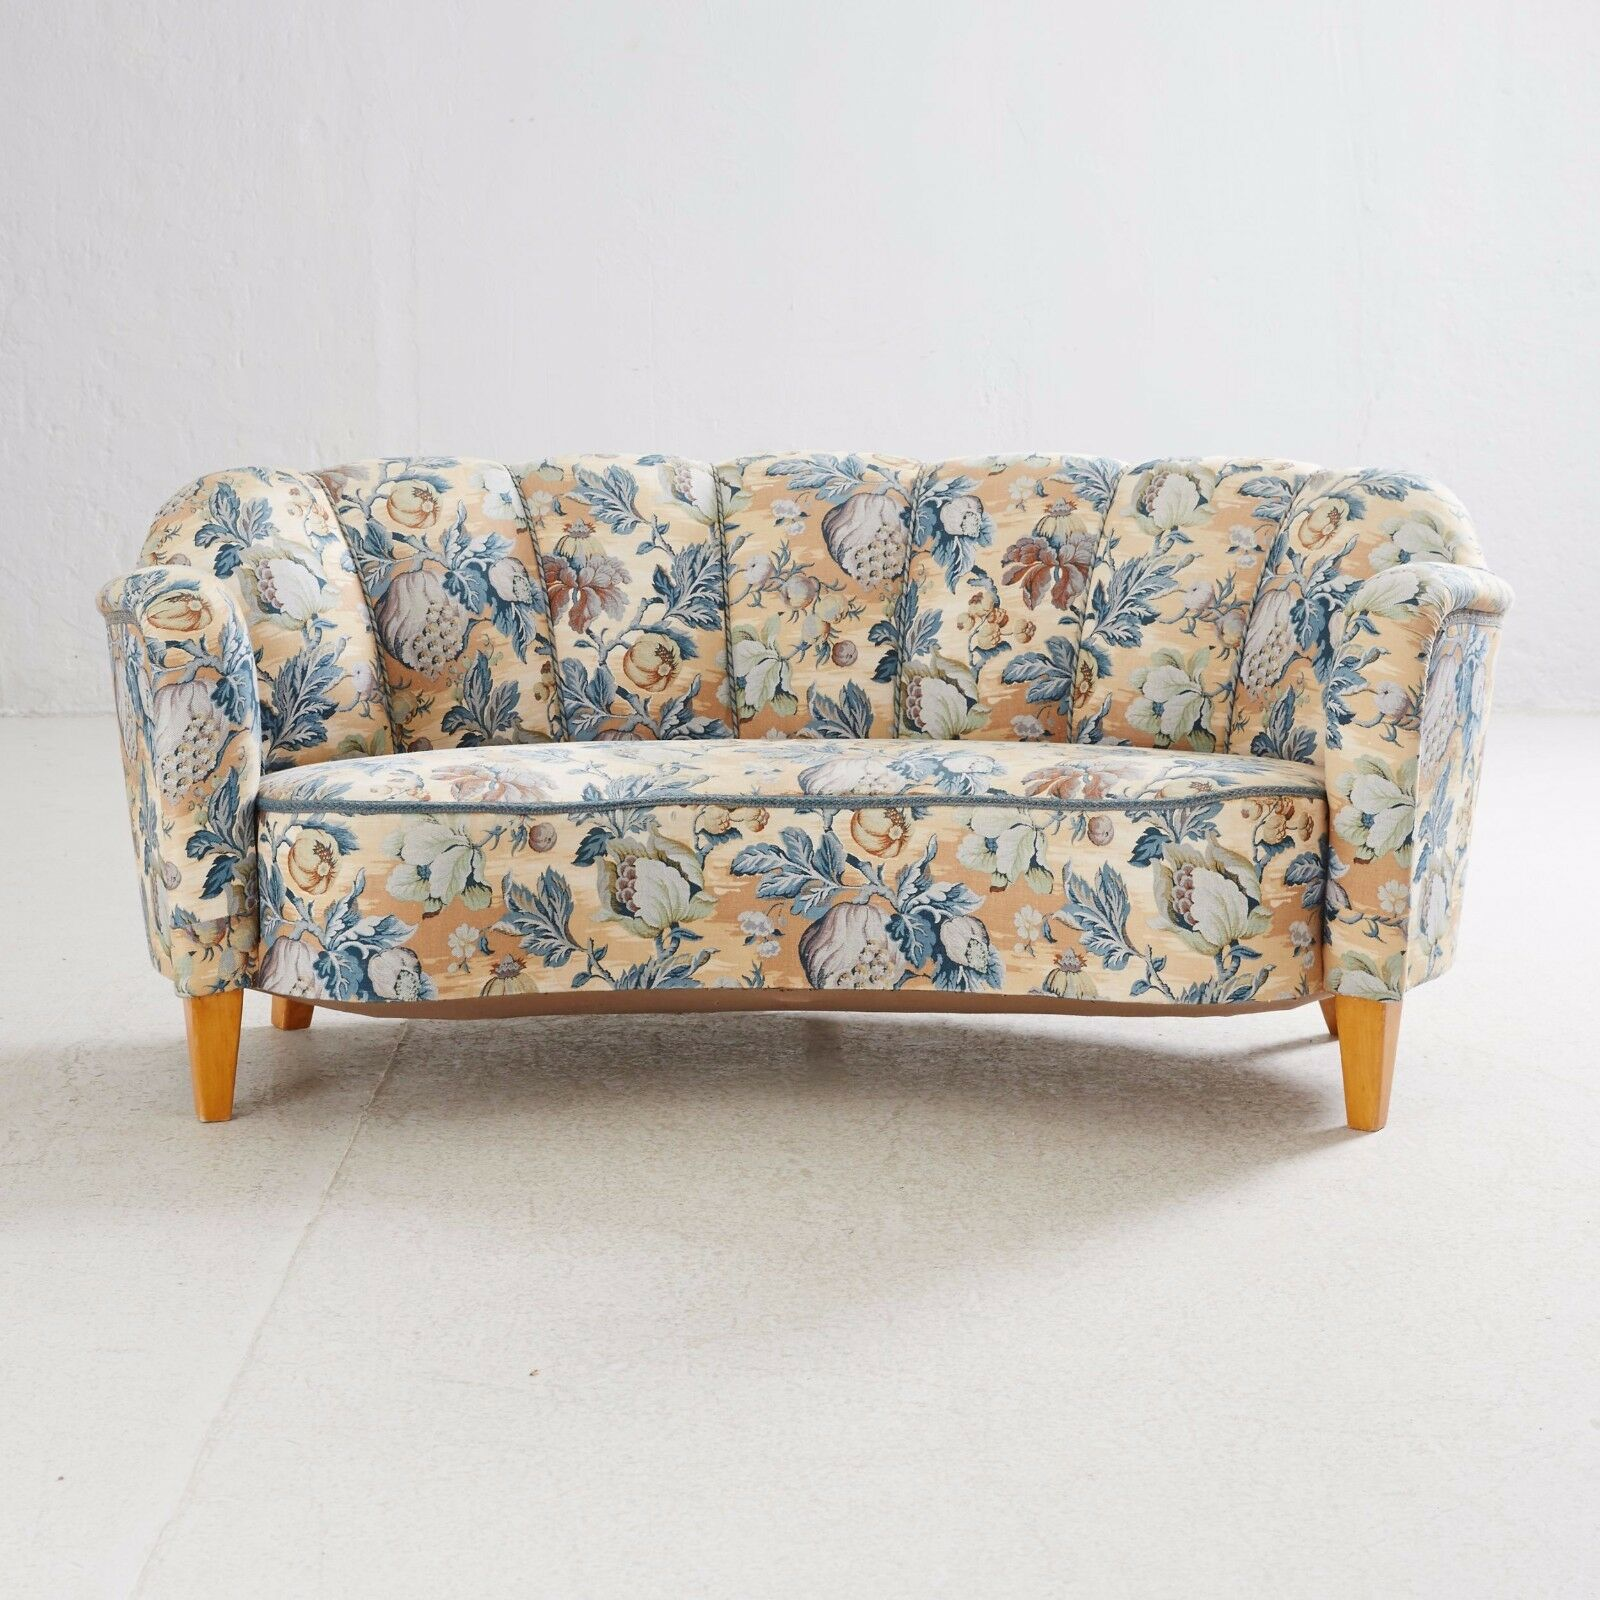 Antique Sofa 1930-40 Covered in a STUNNING-floral-design